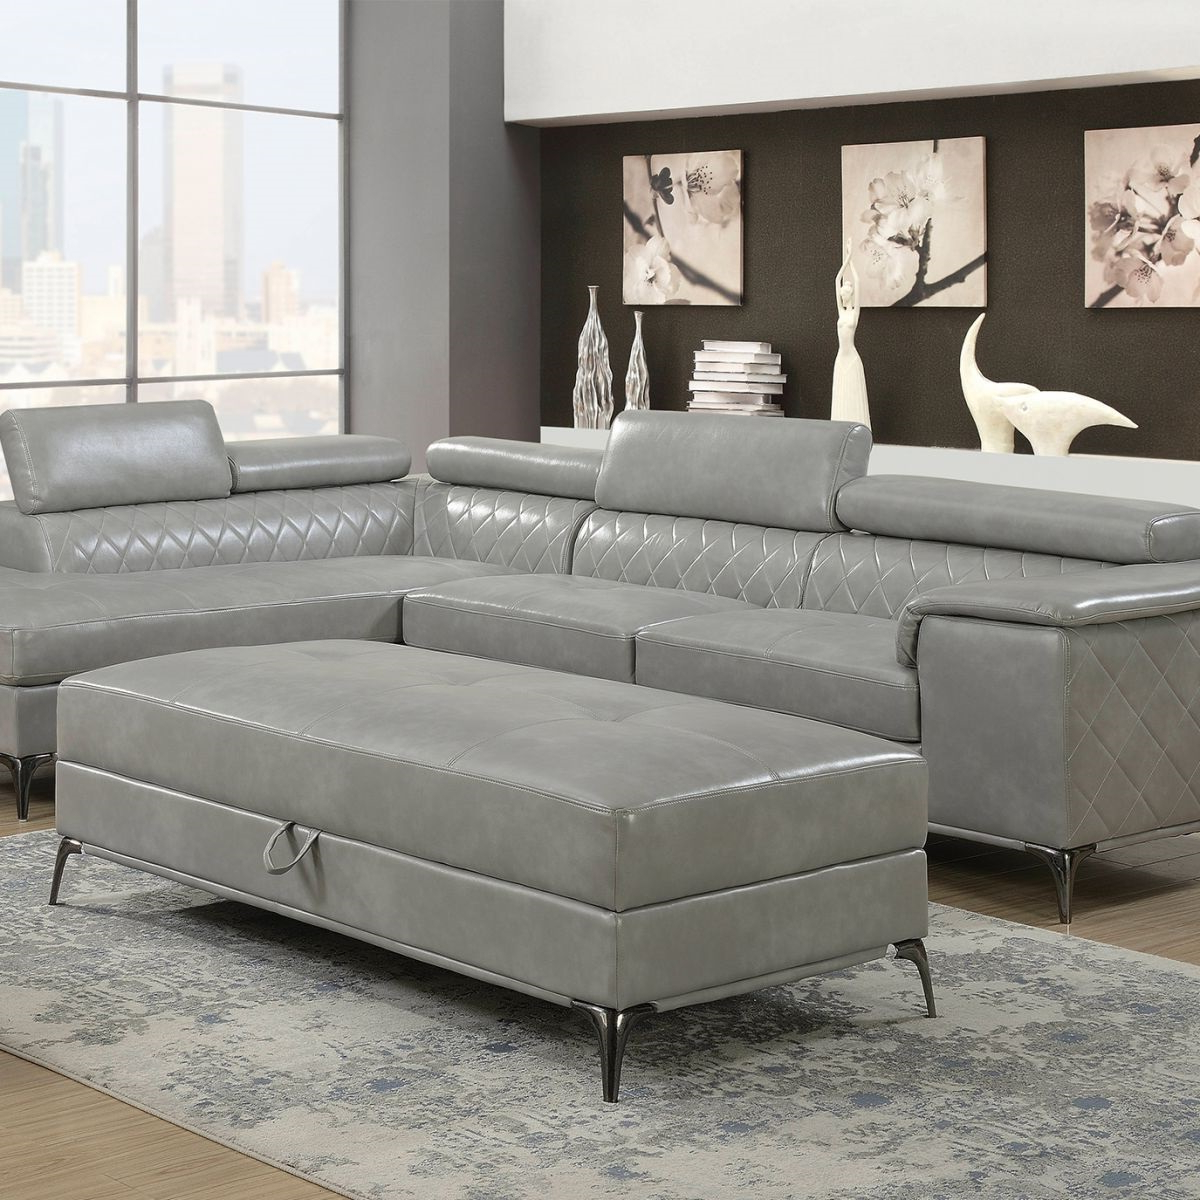 Worthington Grey 2 Pc Sectional & Ottoman (Gallery 5 of 20)